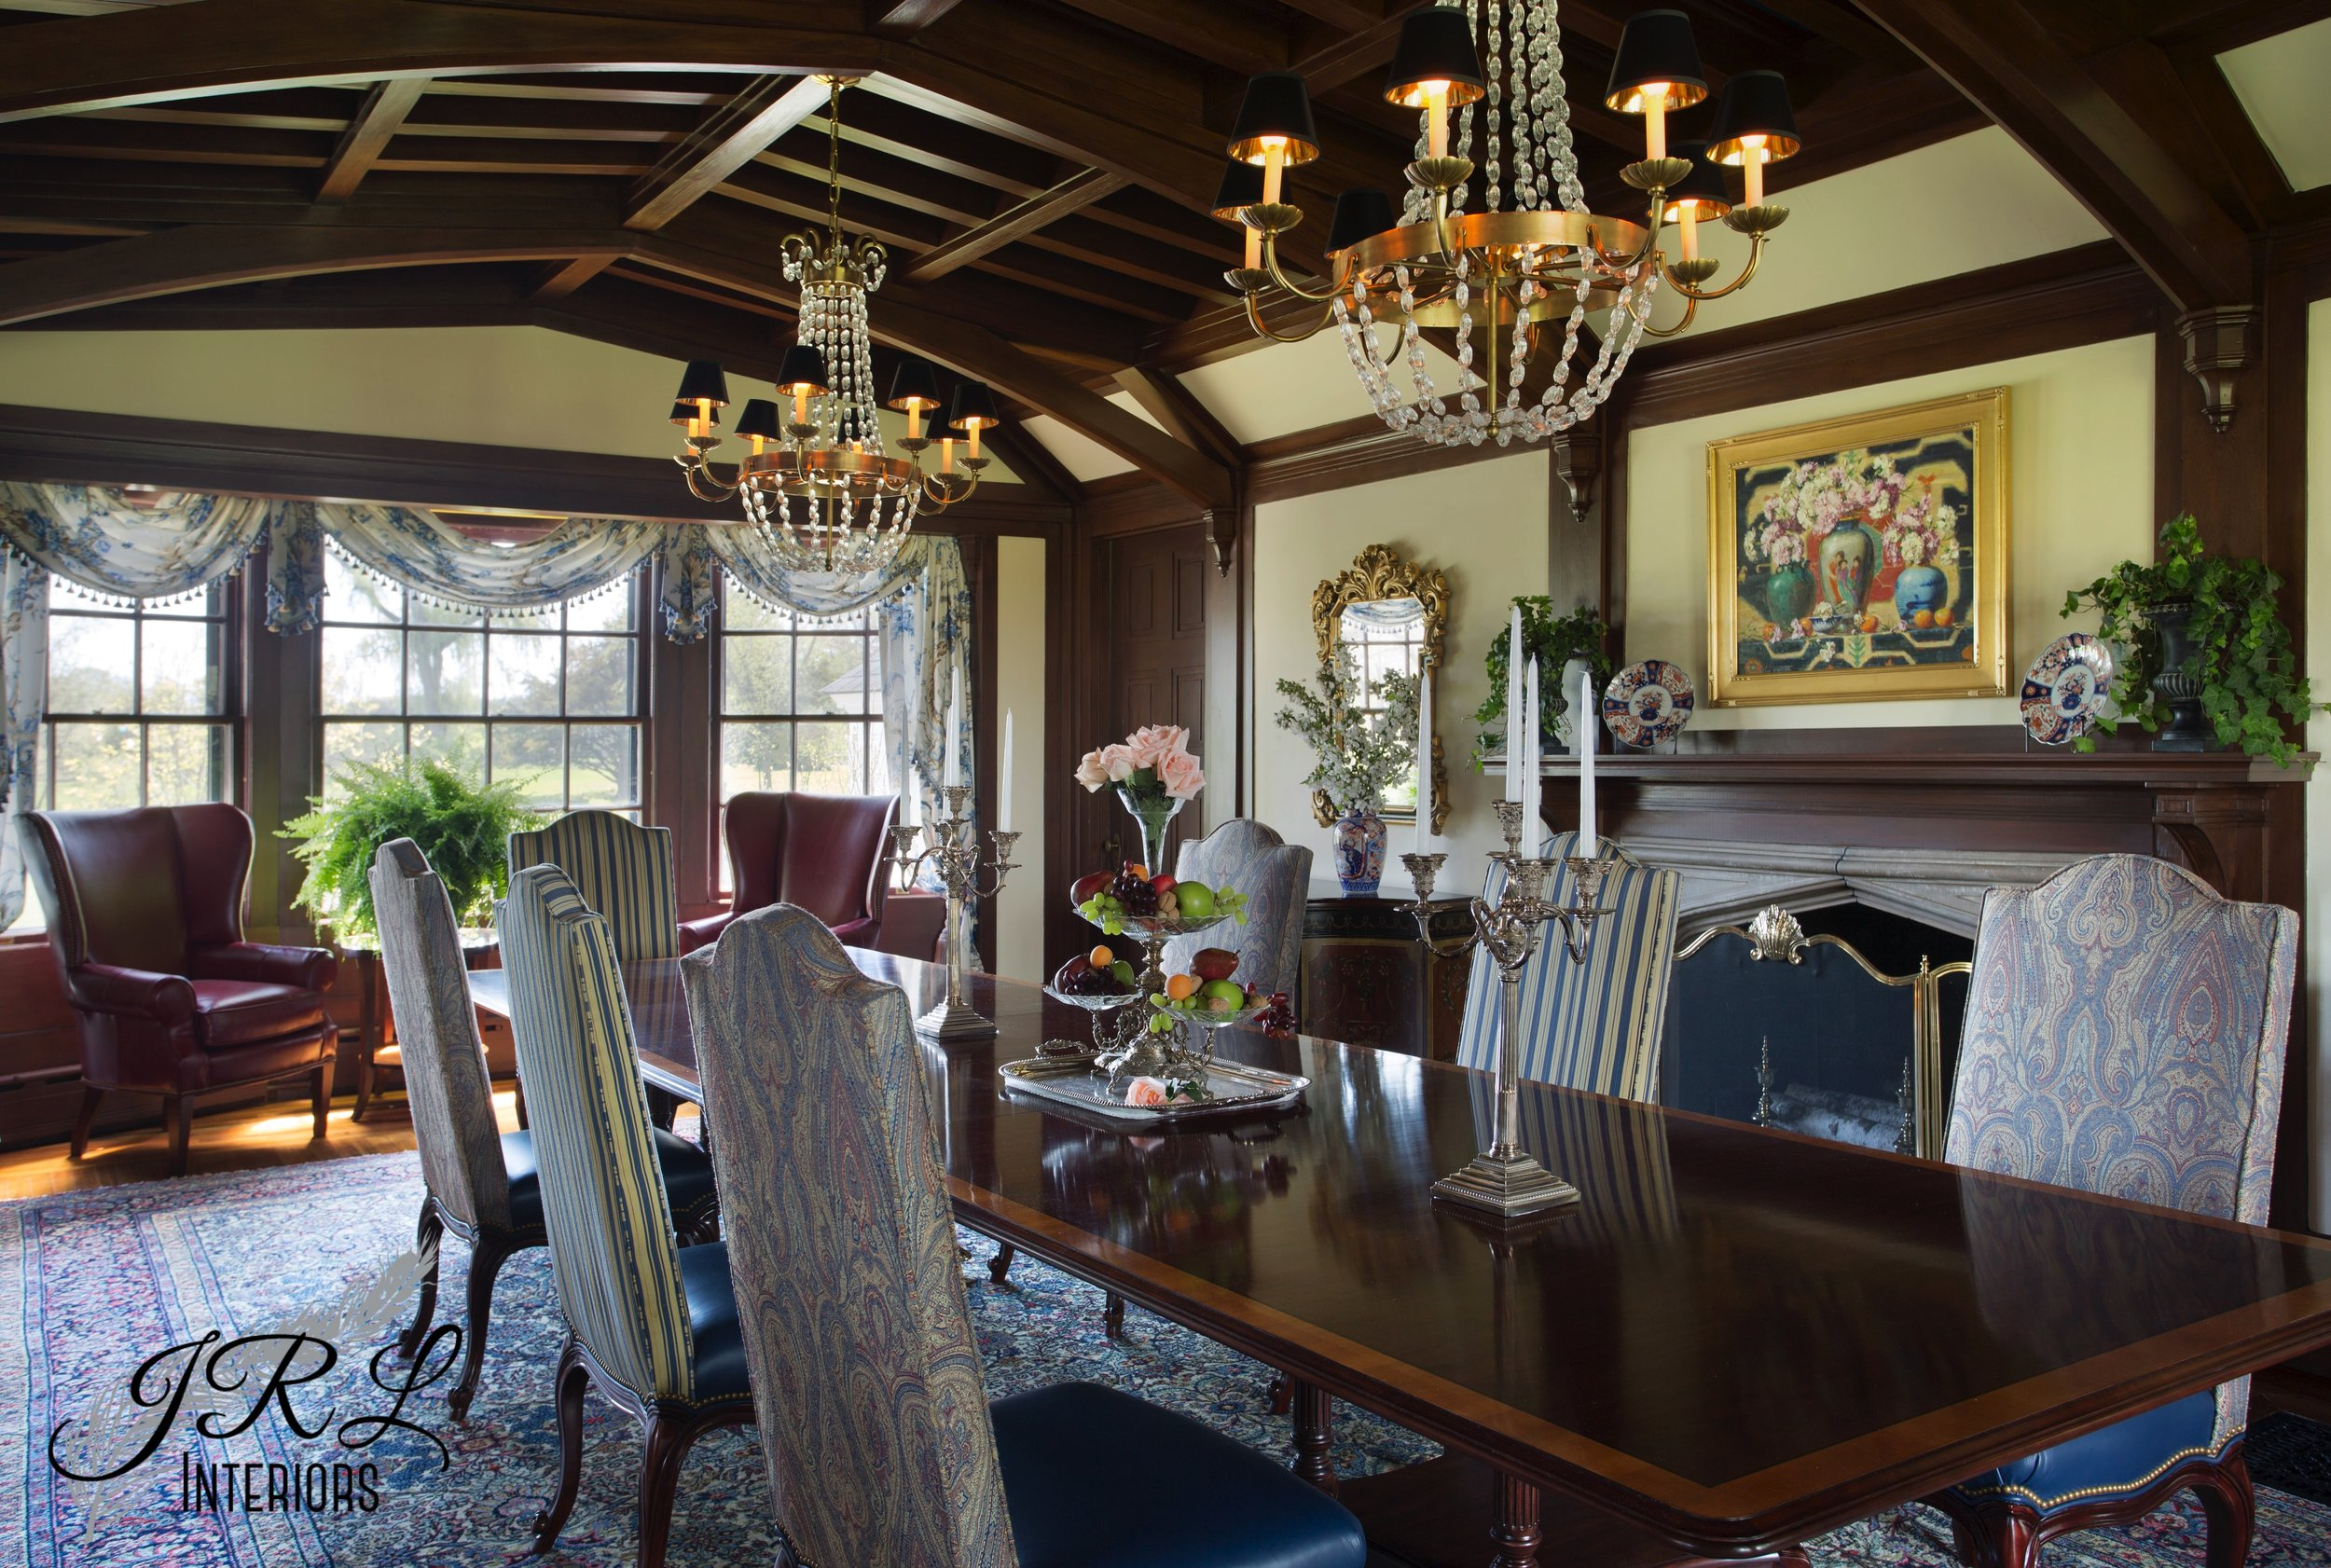 Massachusetts North Shore Dining Room:  Design by JRL Interiors, Photo by Eric Roth